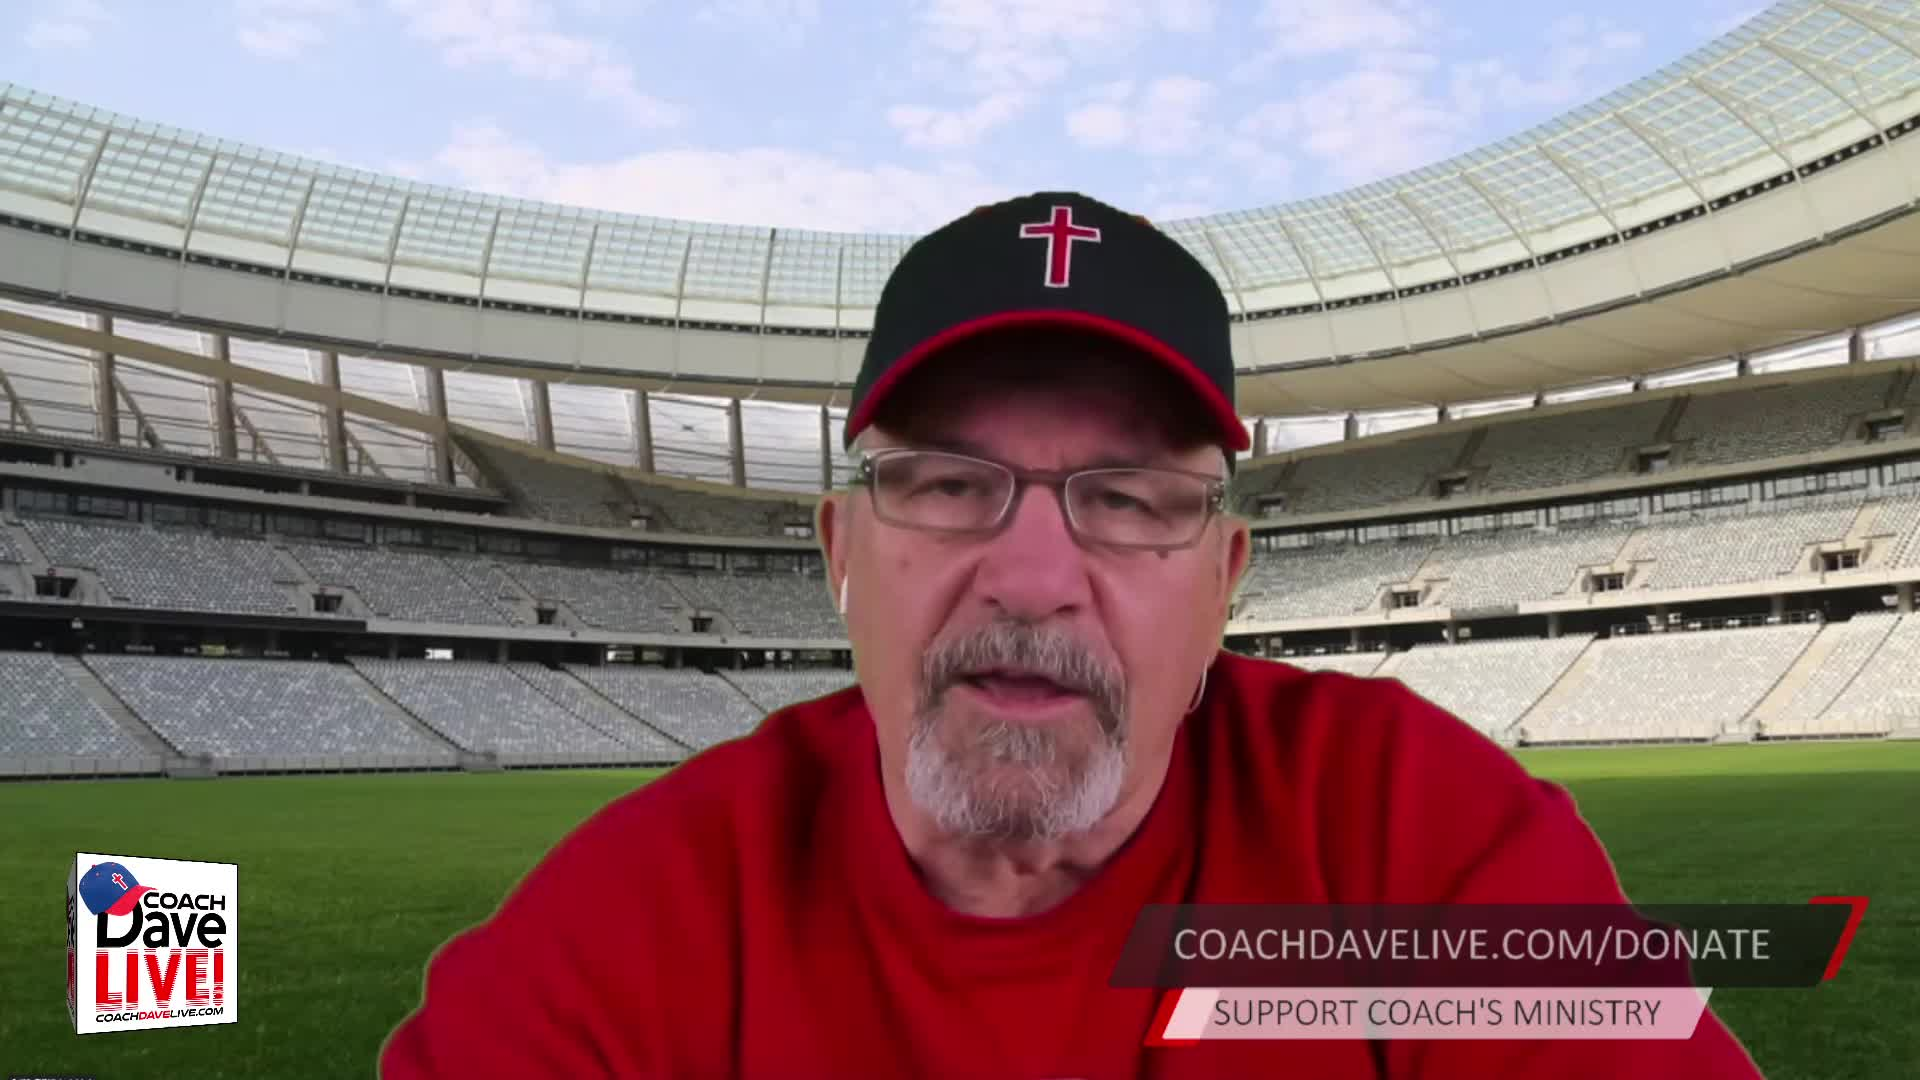 Coach Dave LIVE | 3-15-2021 | JESUS TOLD PETER THAT HE HAD TO BE CONVERTED